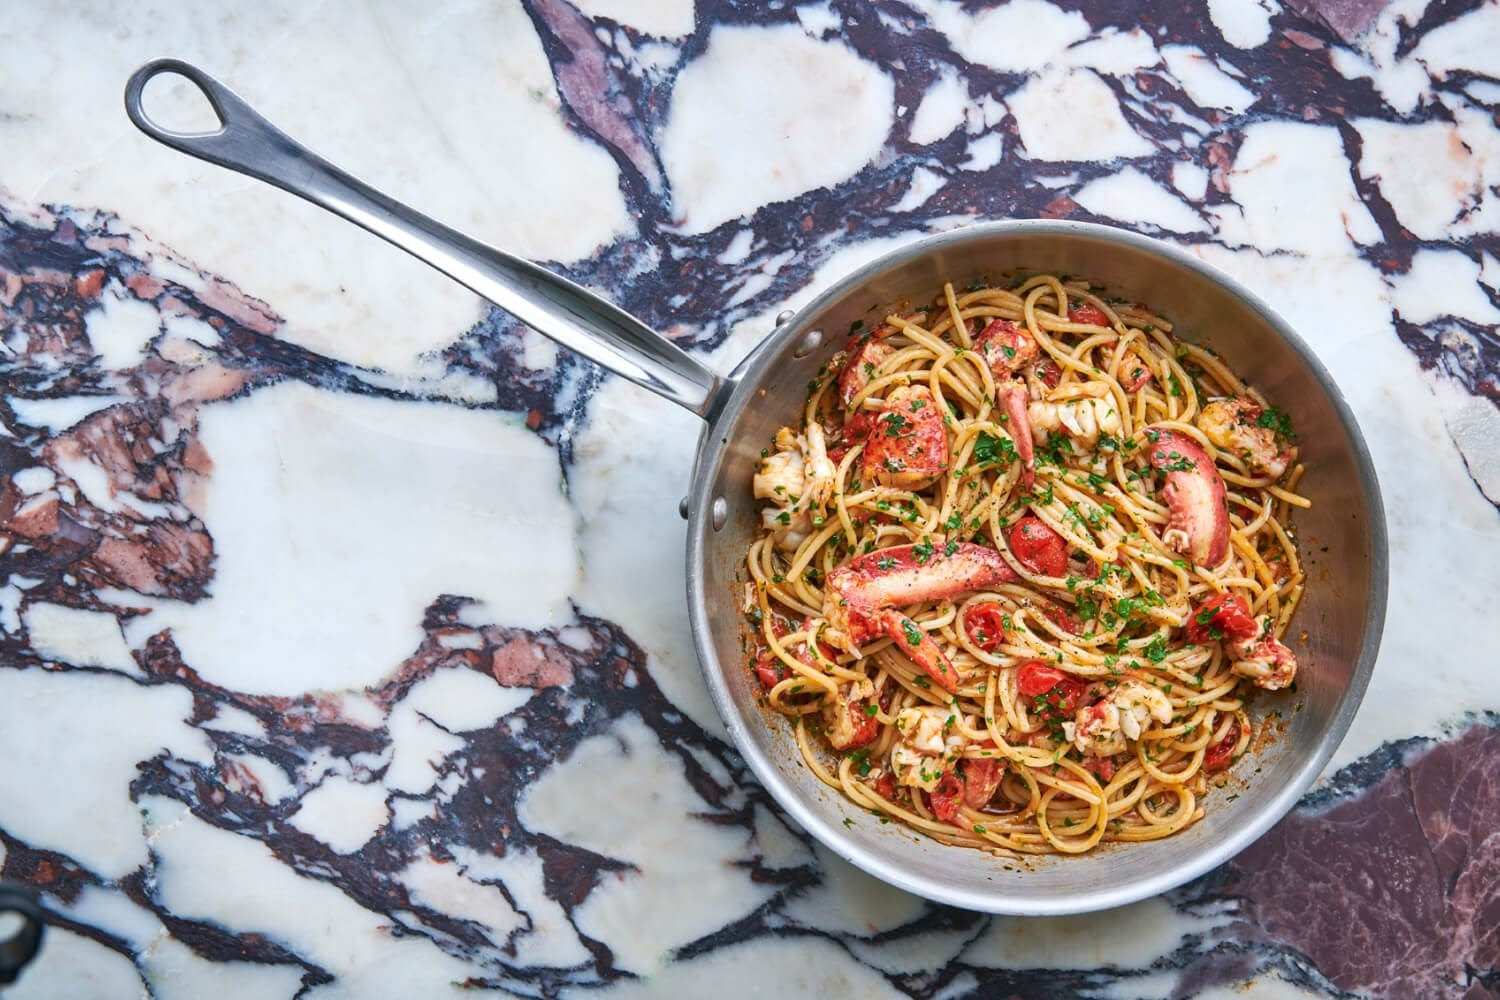 Spaghetti with lobster served at Italian restaurant Daphne's for lunch and dinner in Kensington